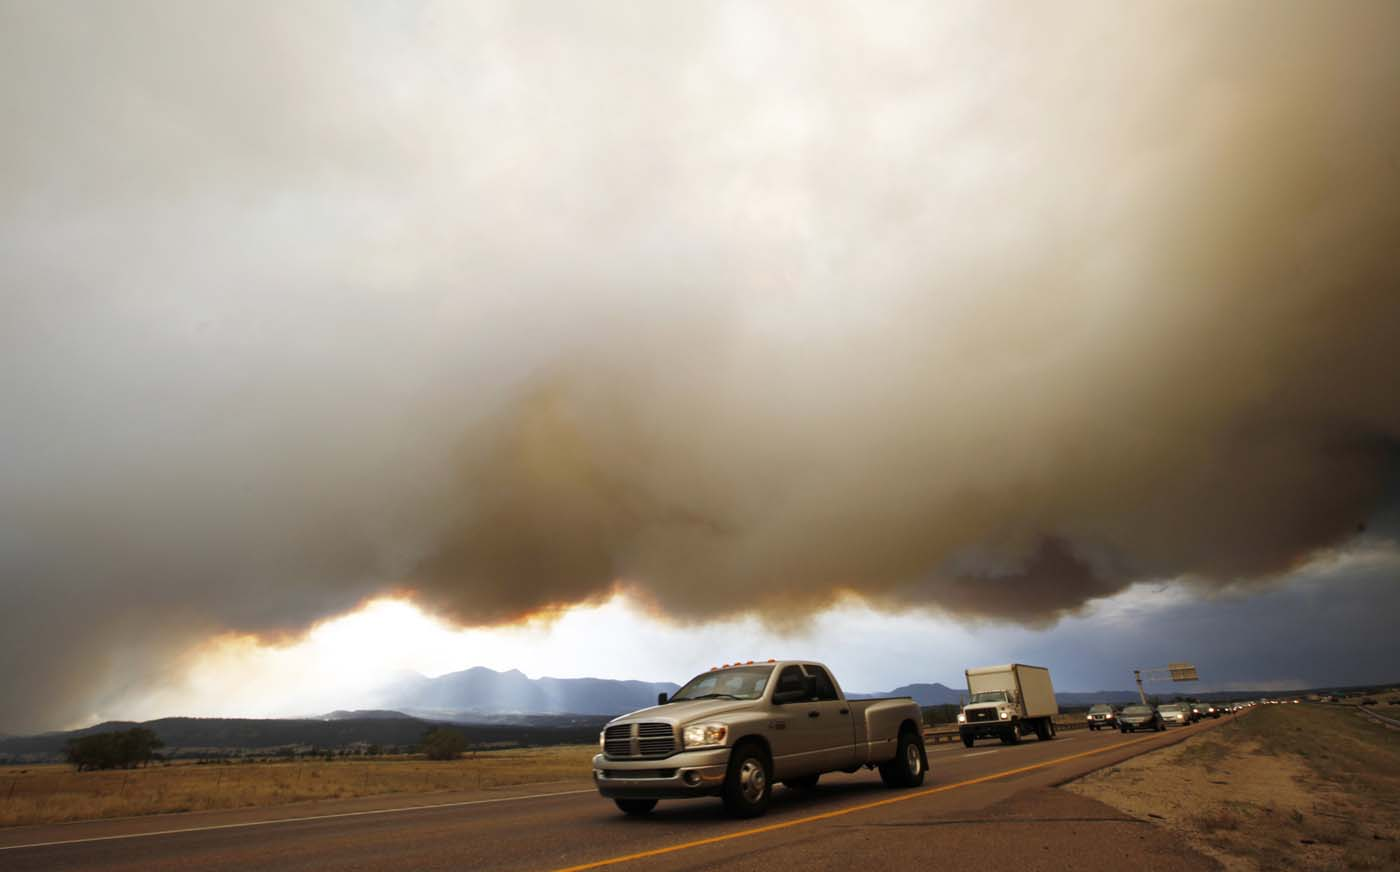 JUNE 26: Smoke from the Waldo Canyon fire hovers over the I-25 north of Colorado Springs in Colorado June 26, 2012. (Rick Wilking/Reuters)